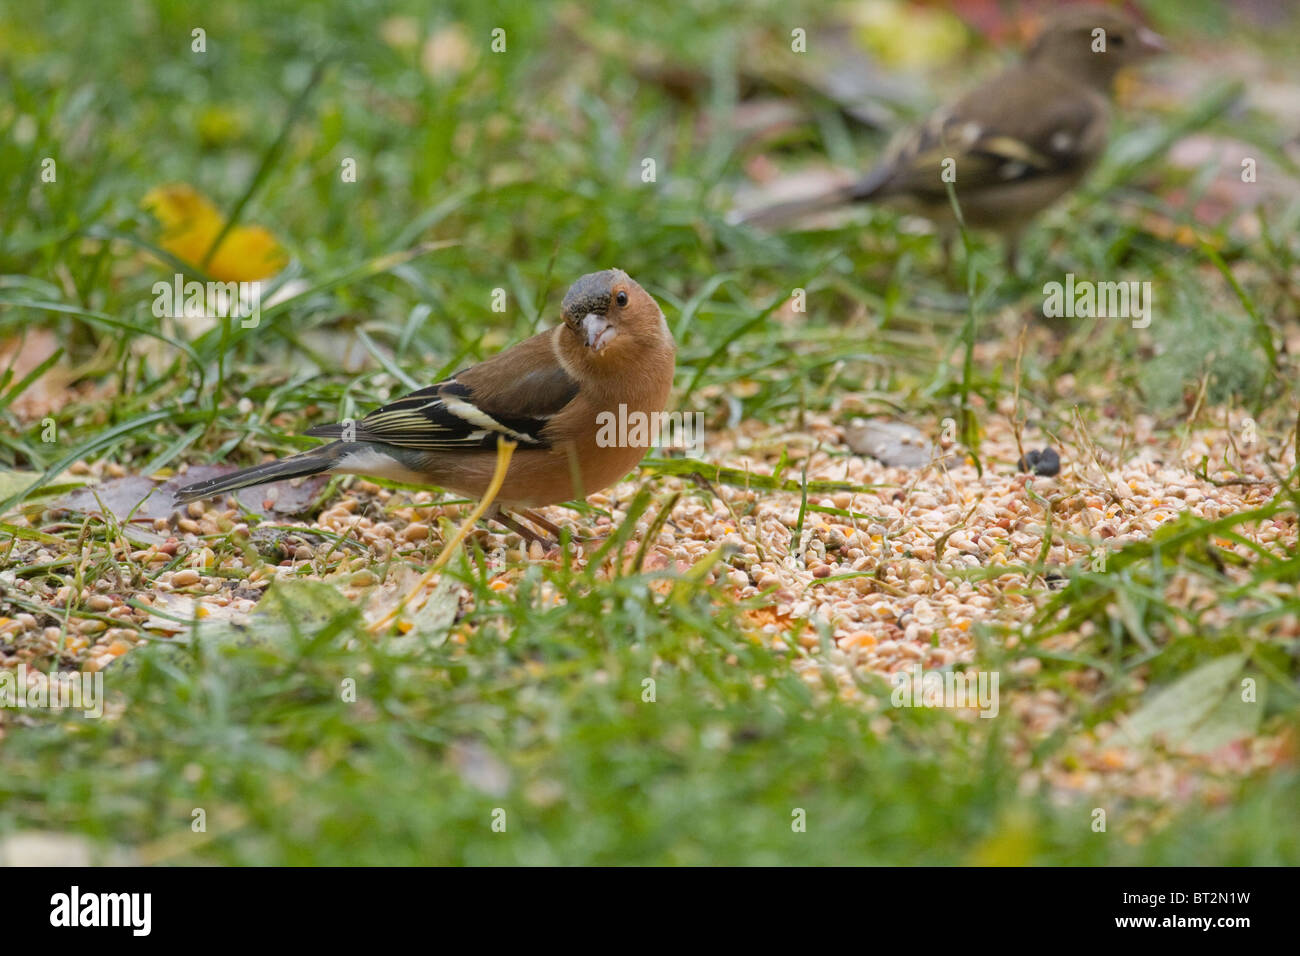 Male chaffinch on the ground. - Stock Image